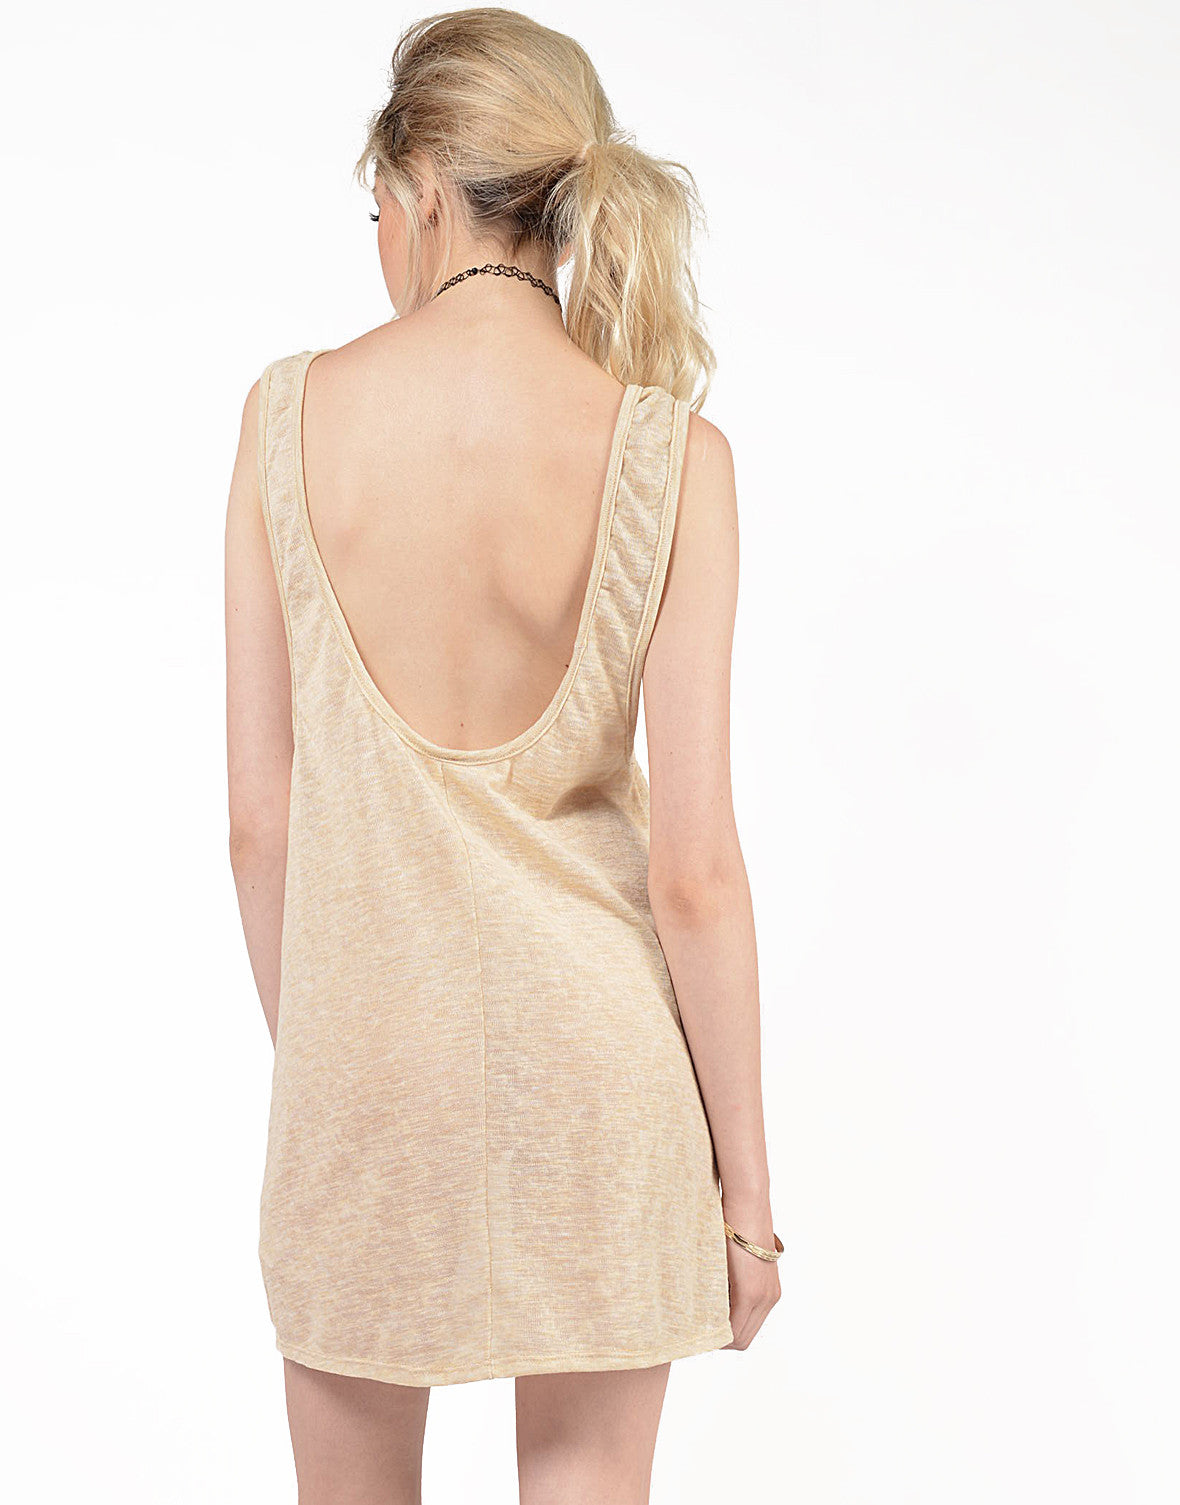 Back View of Knit Scoop Back Dress